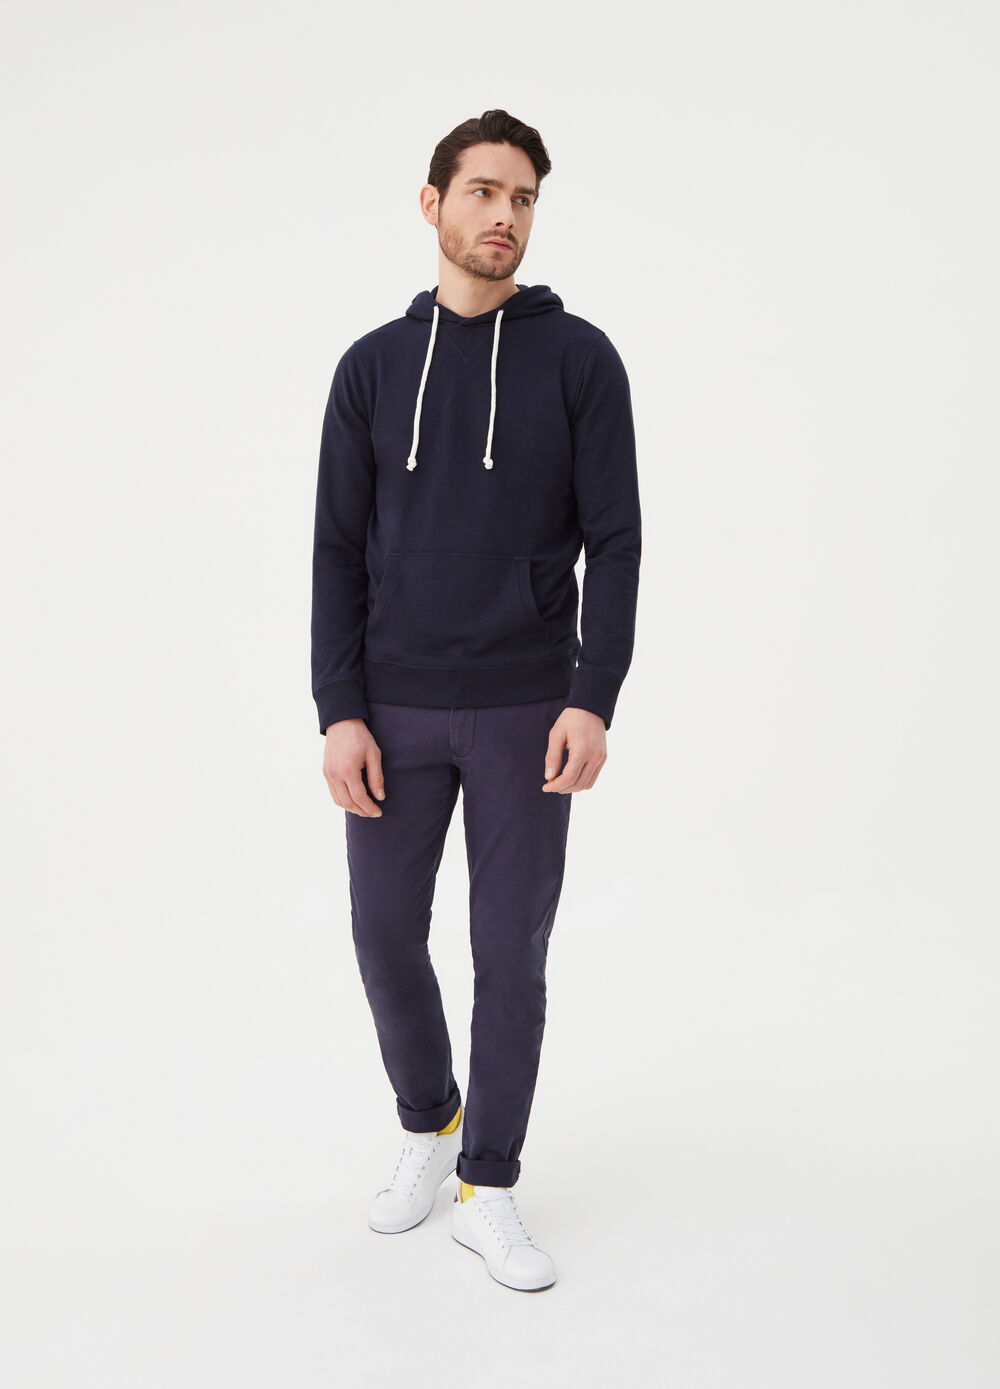 French terry sweatshirt with pouch pocket